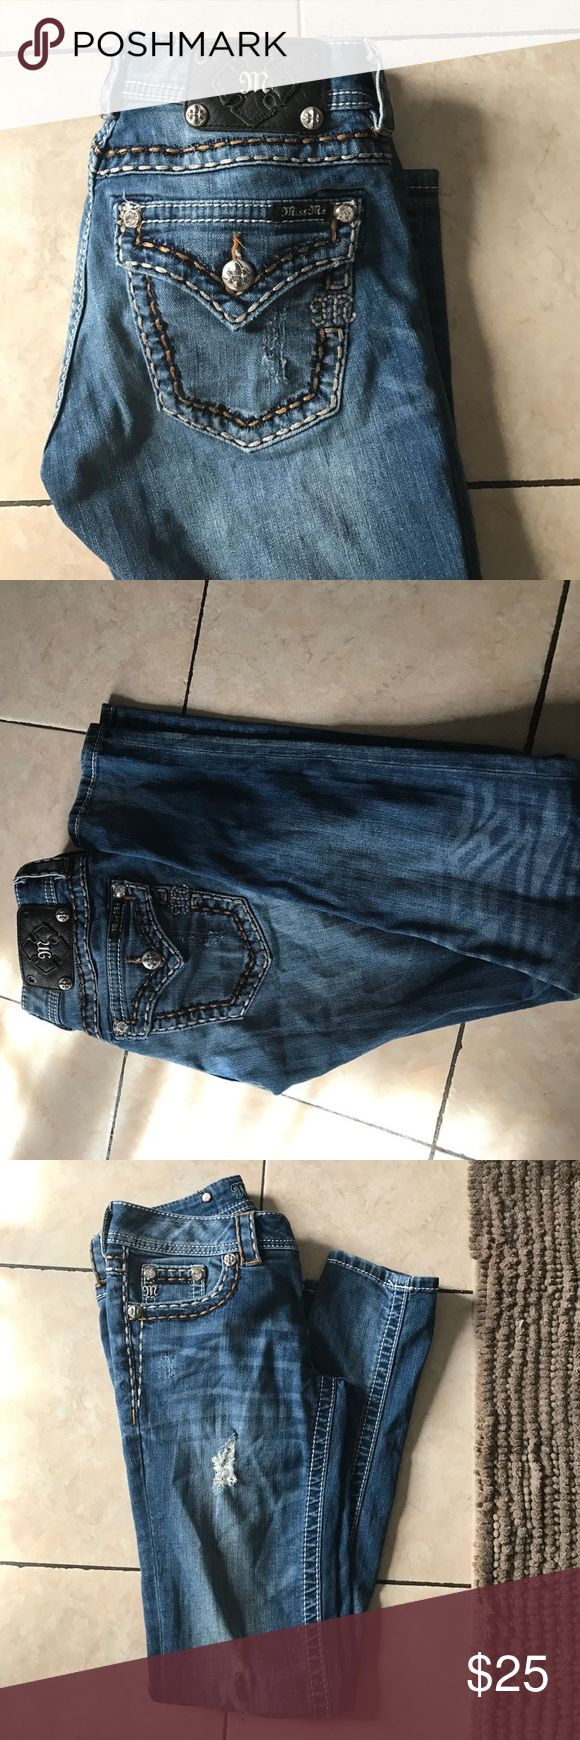 Miss Me In great condition Miss Me Jeans